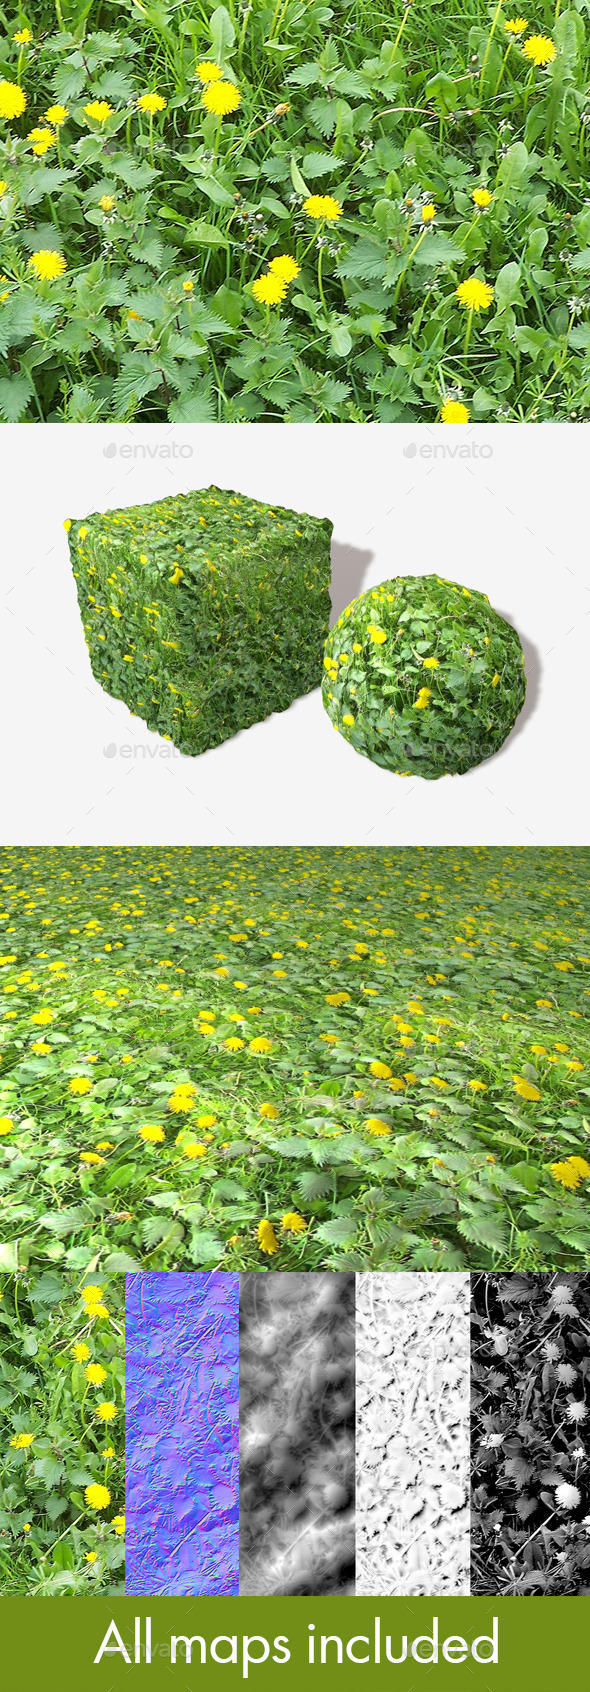 Dandelions and Weeds Seamless Texture